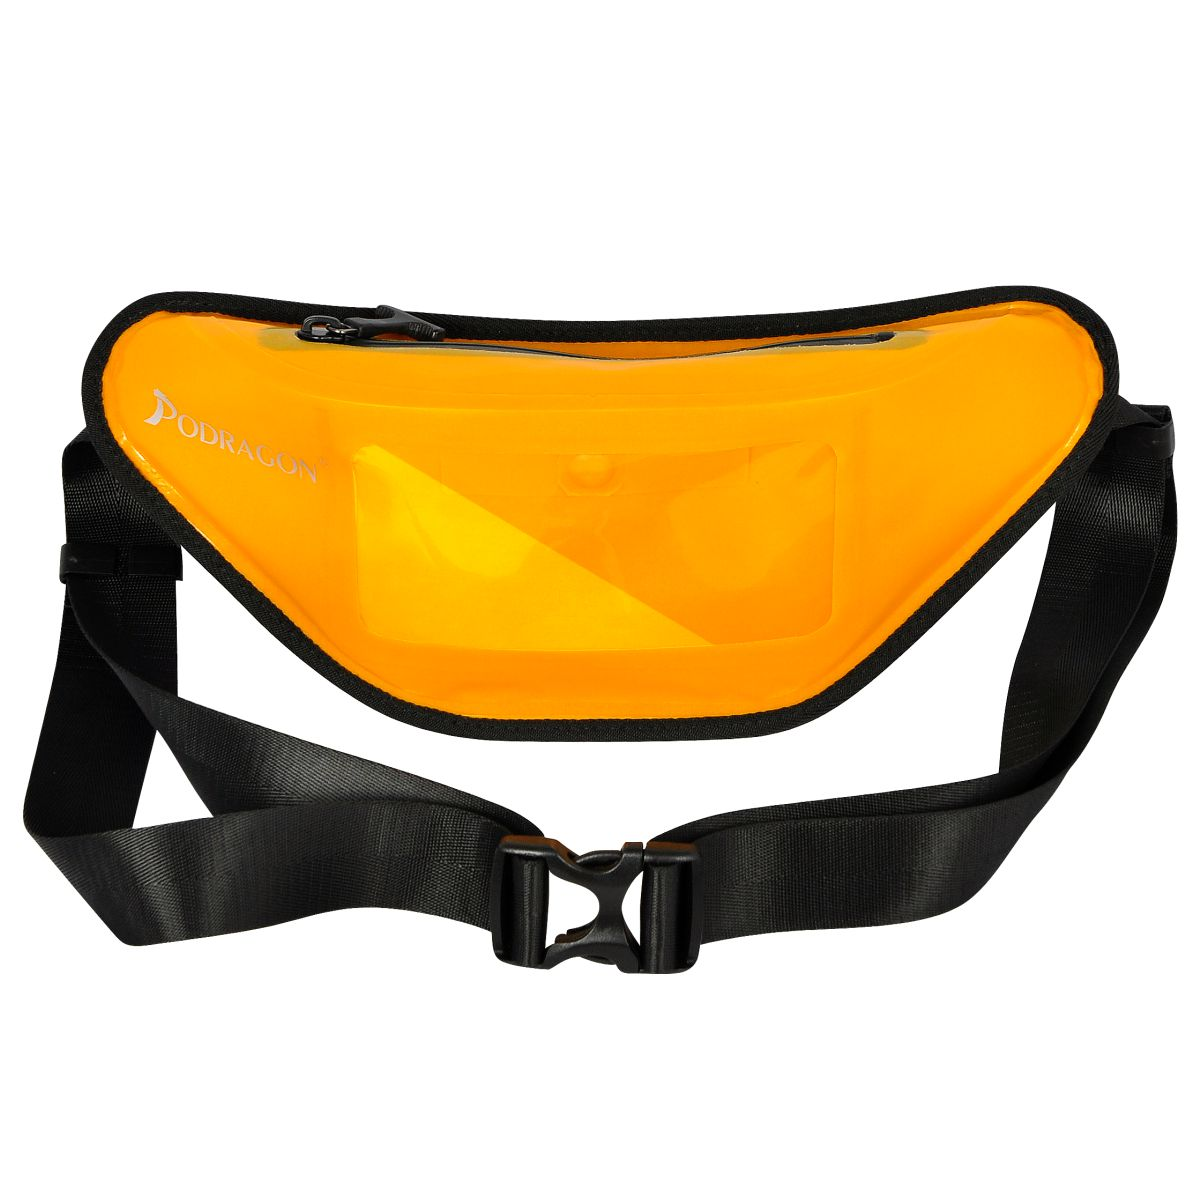 Podragon Diving waist bag super airtight zipper large capacity outdoor swimming